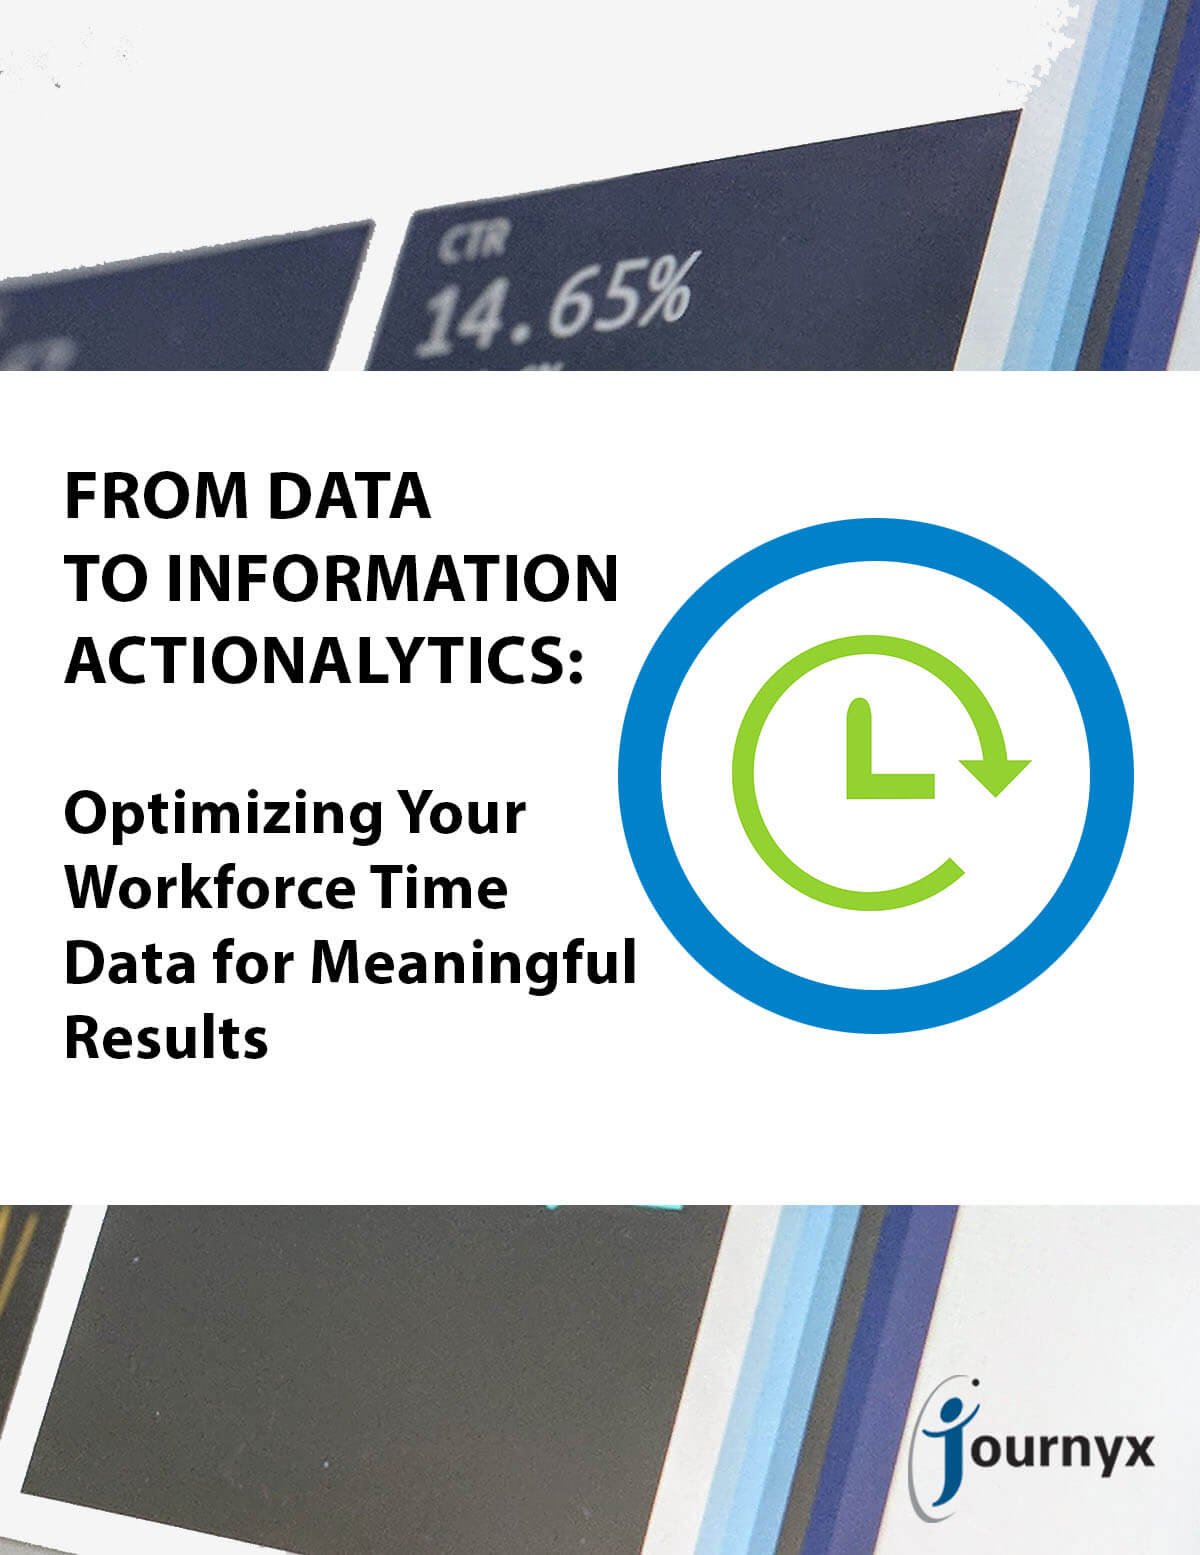 Optimizing Your Workforce Reporting & Time Data for Meaningful Results